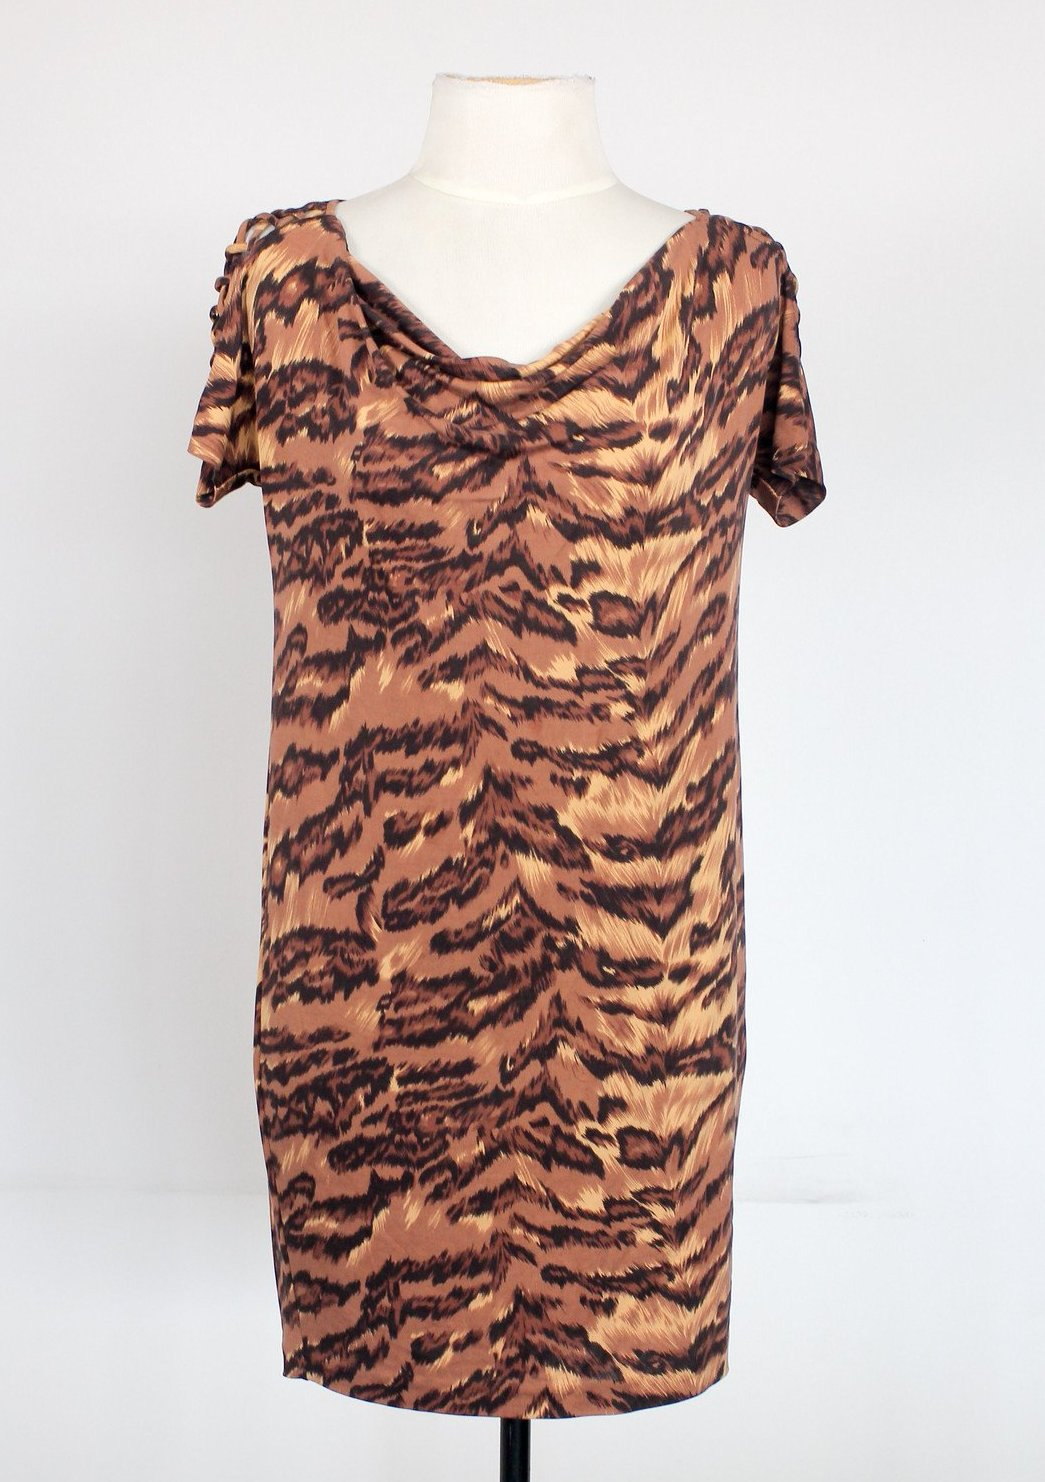 Diane Von Furstenberg Leopard Dress